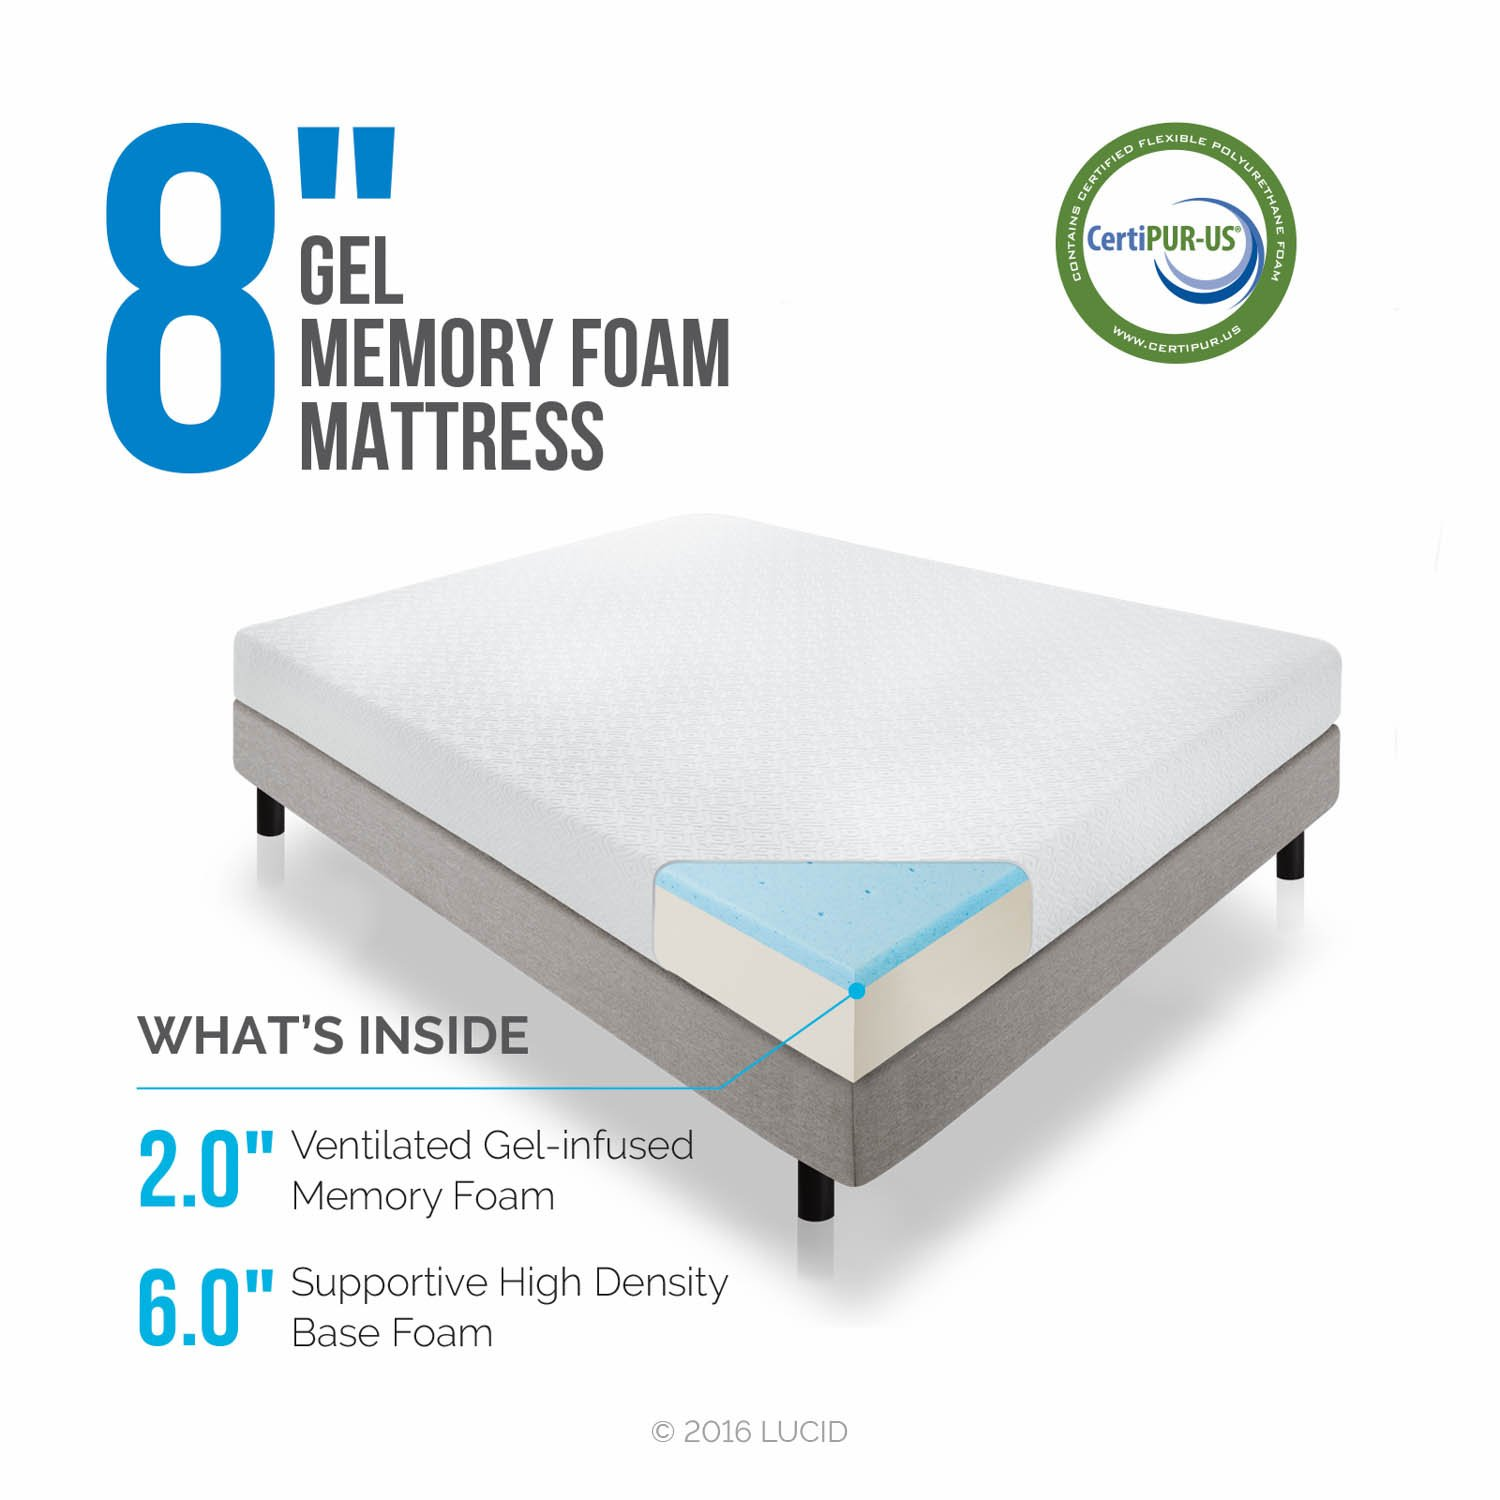 amazoncom lucid 8 inch gel infused memory foam mattress medium firm feel certipur us certified 10 year warranty twin kitchen dining - Memory Foam Mattress